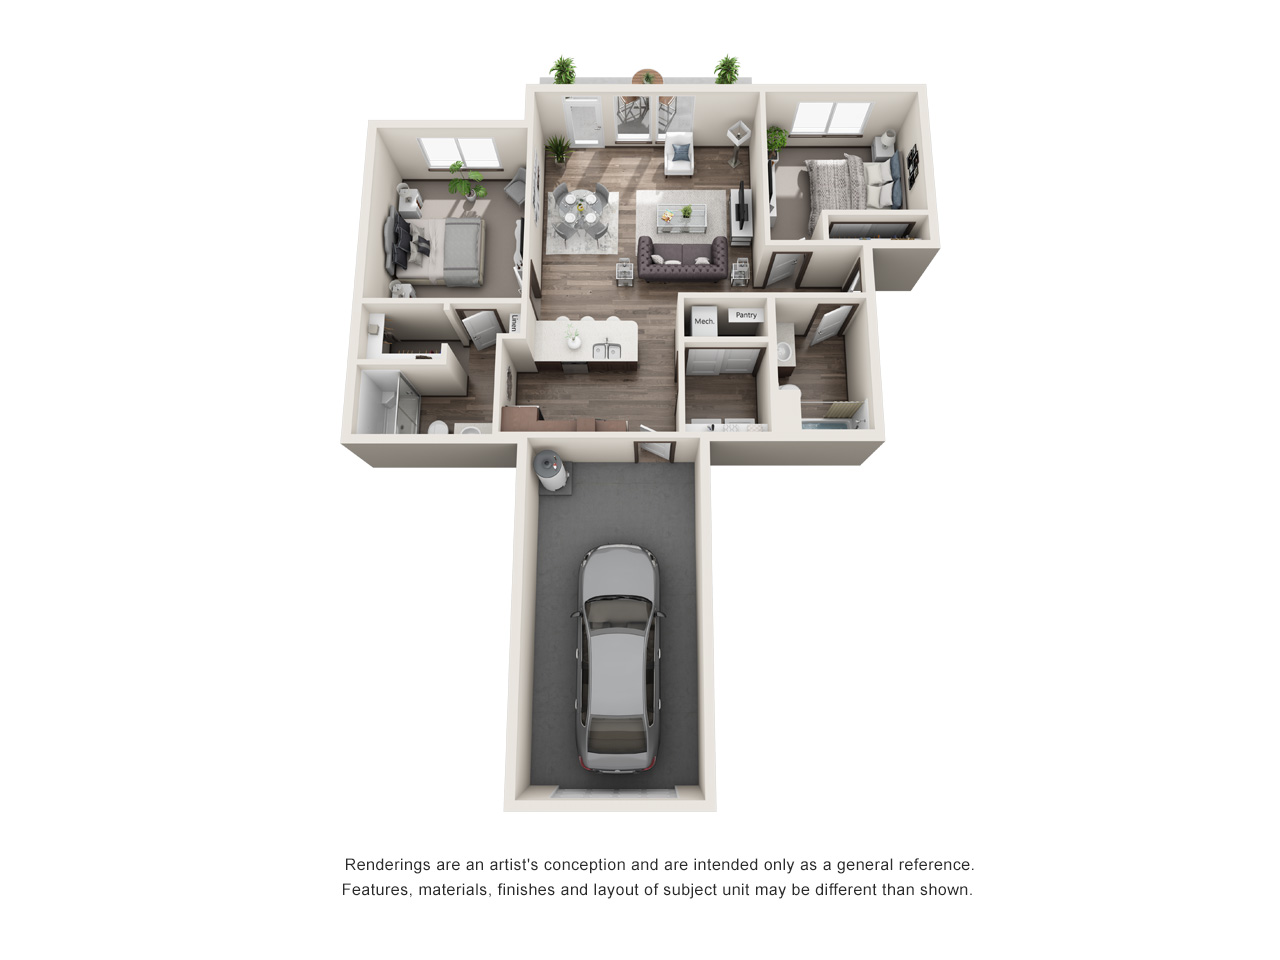 image floor plan